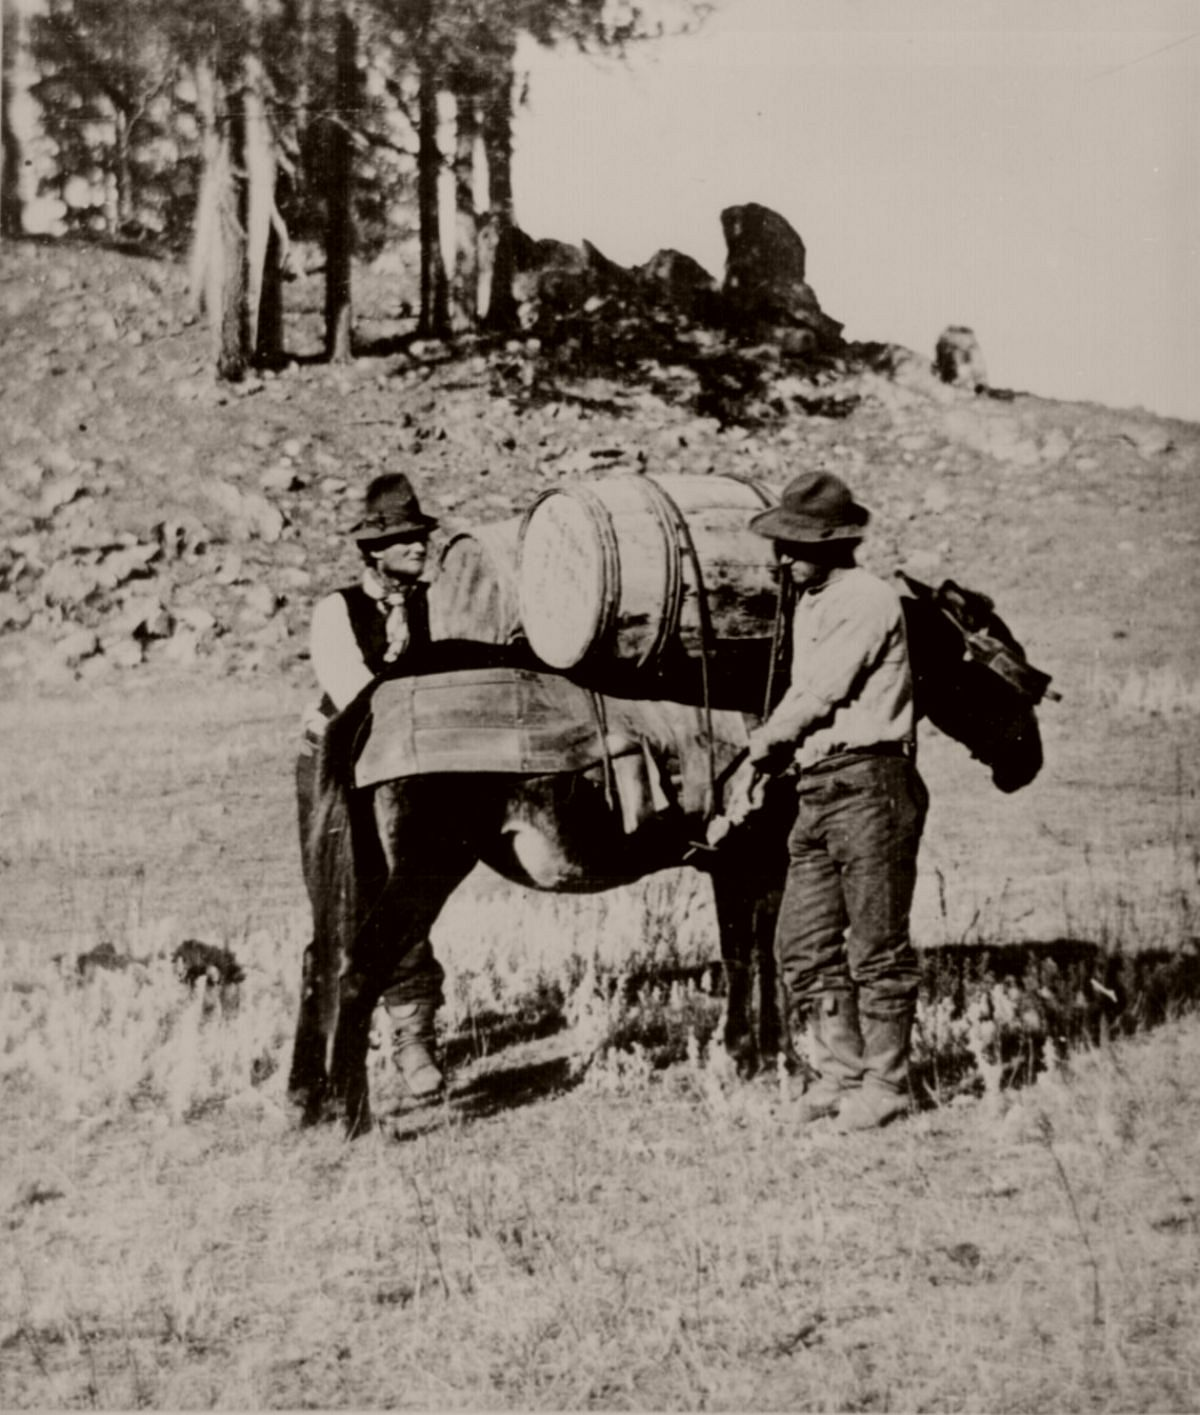 Cinching and loading pack mule with flour during starvation march of Gen. George Crook's expedition into the Black Hills, 1876.